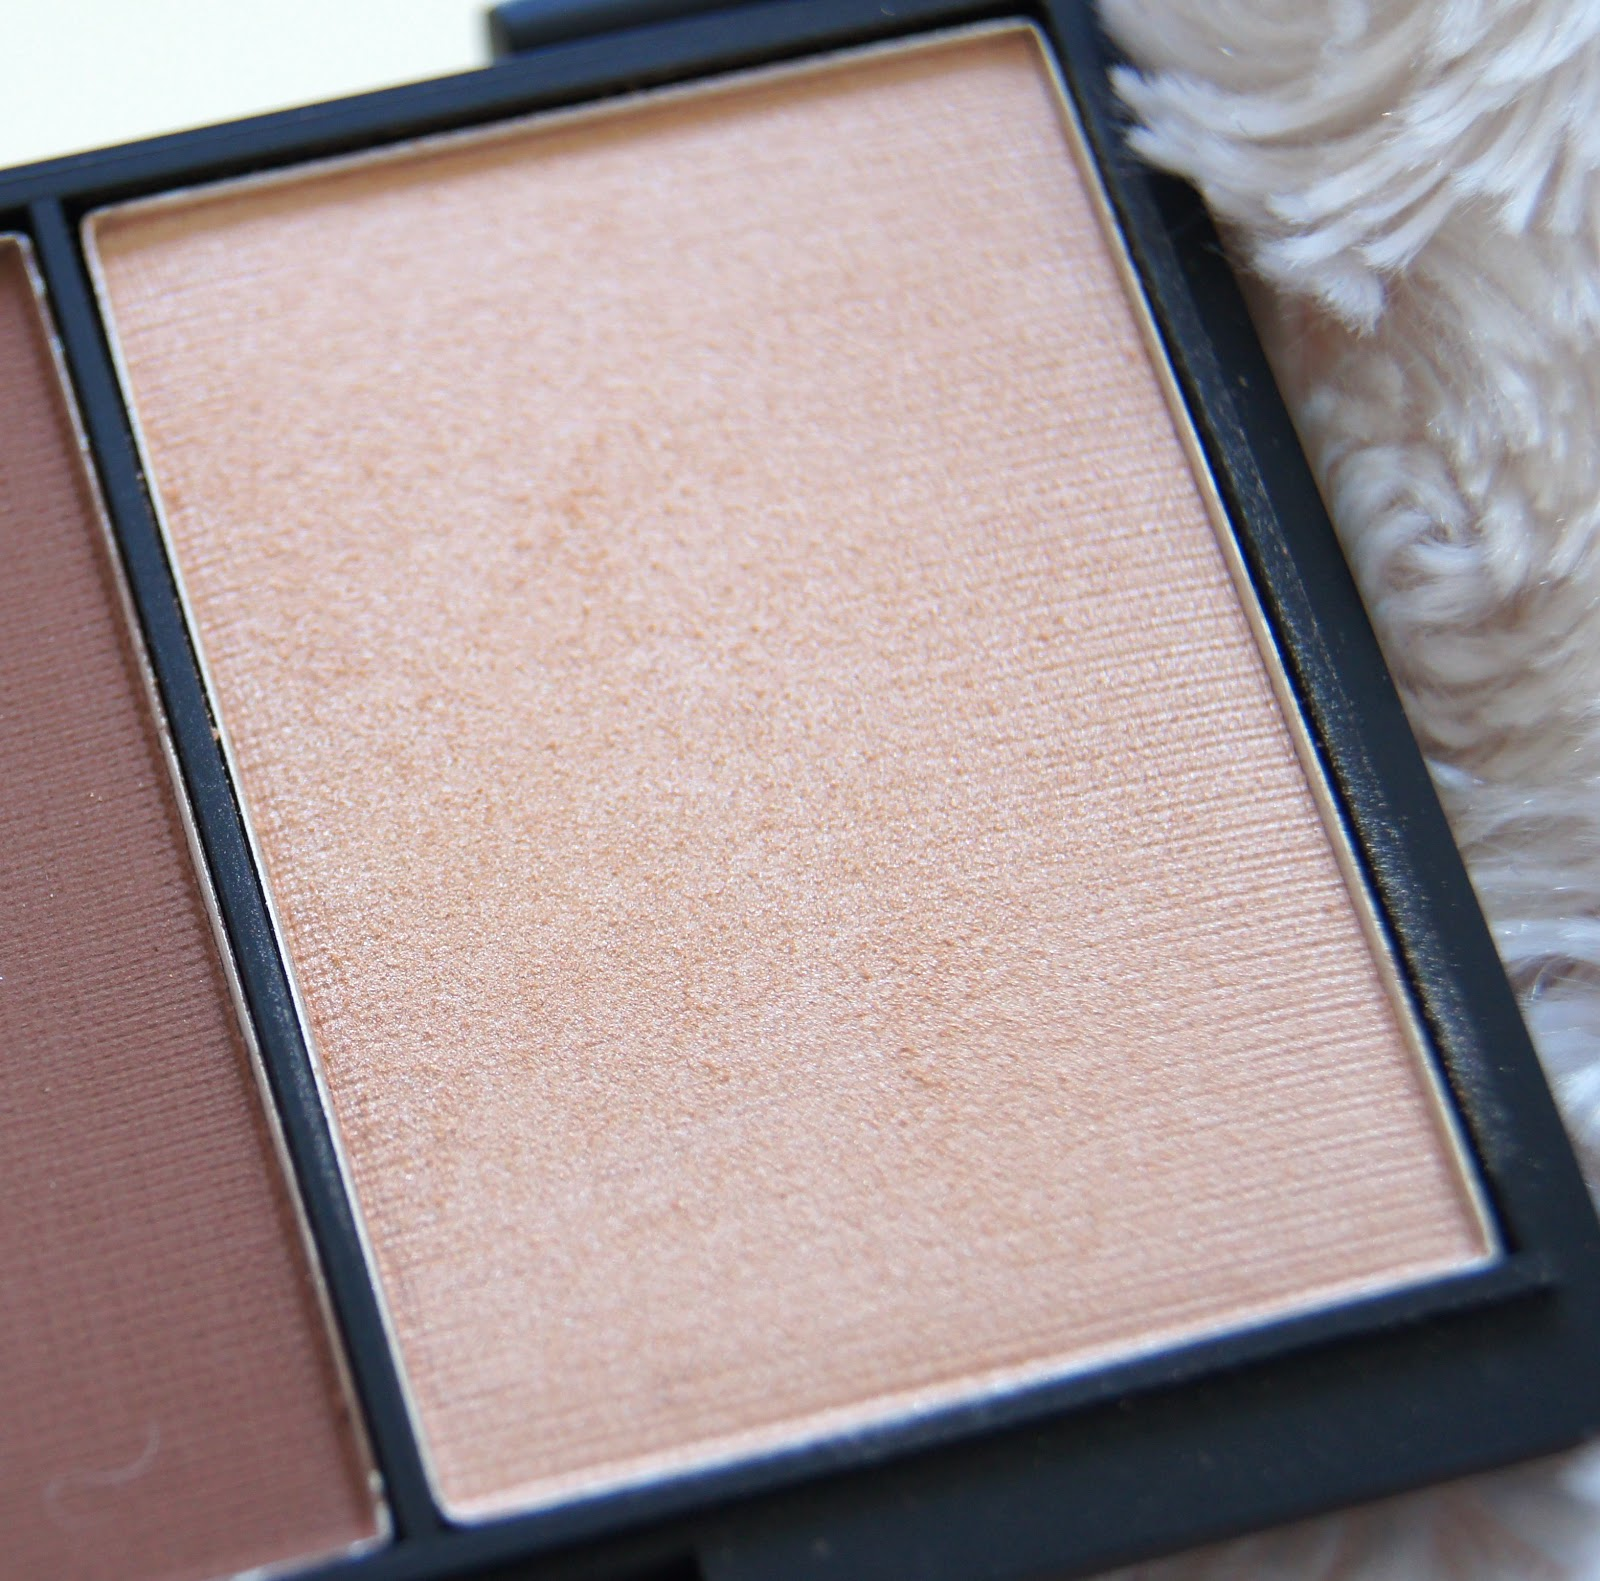 Best Worst Powder Highlighters Alicegracebeauty Uk